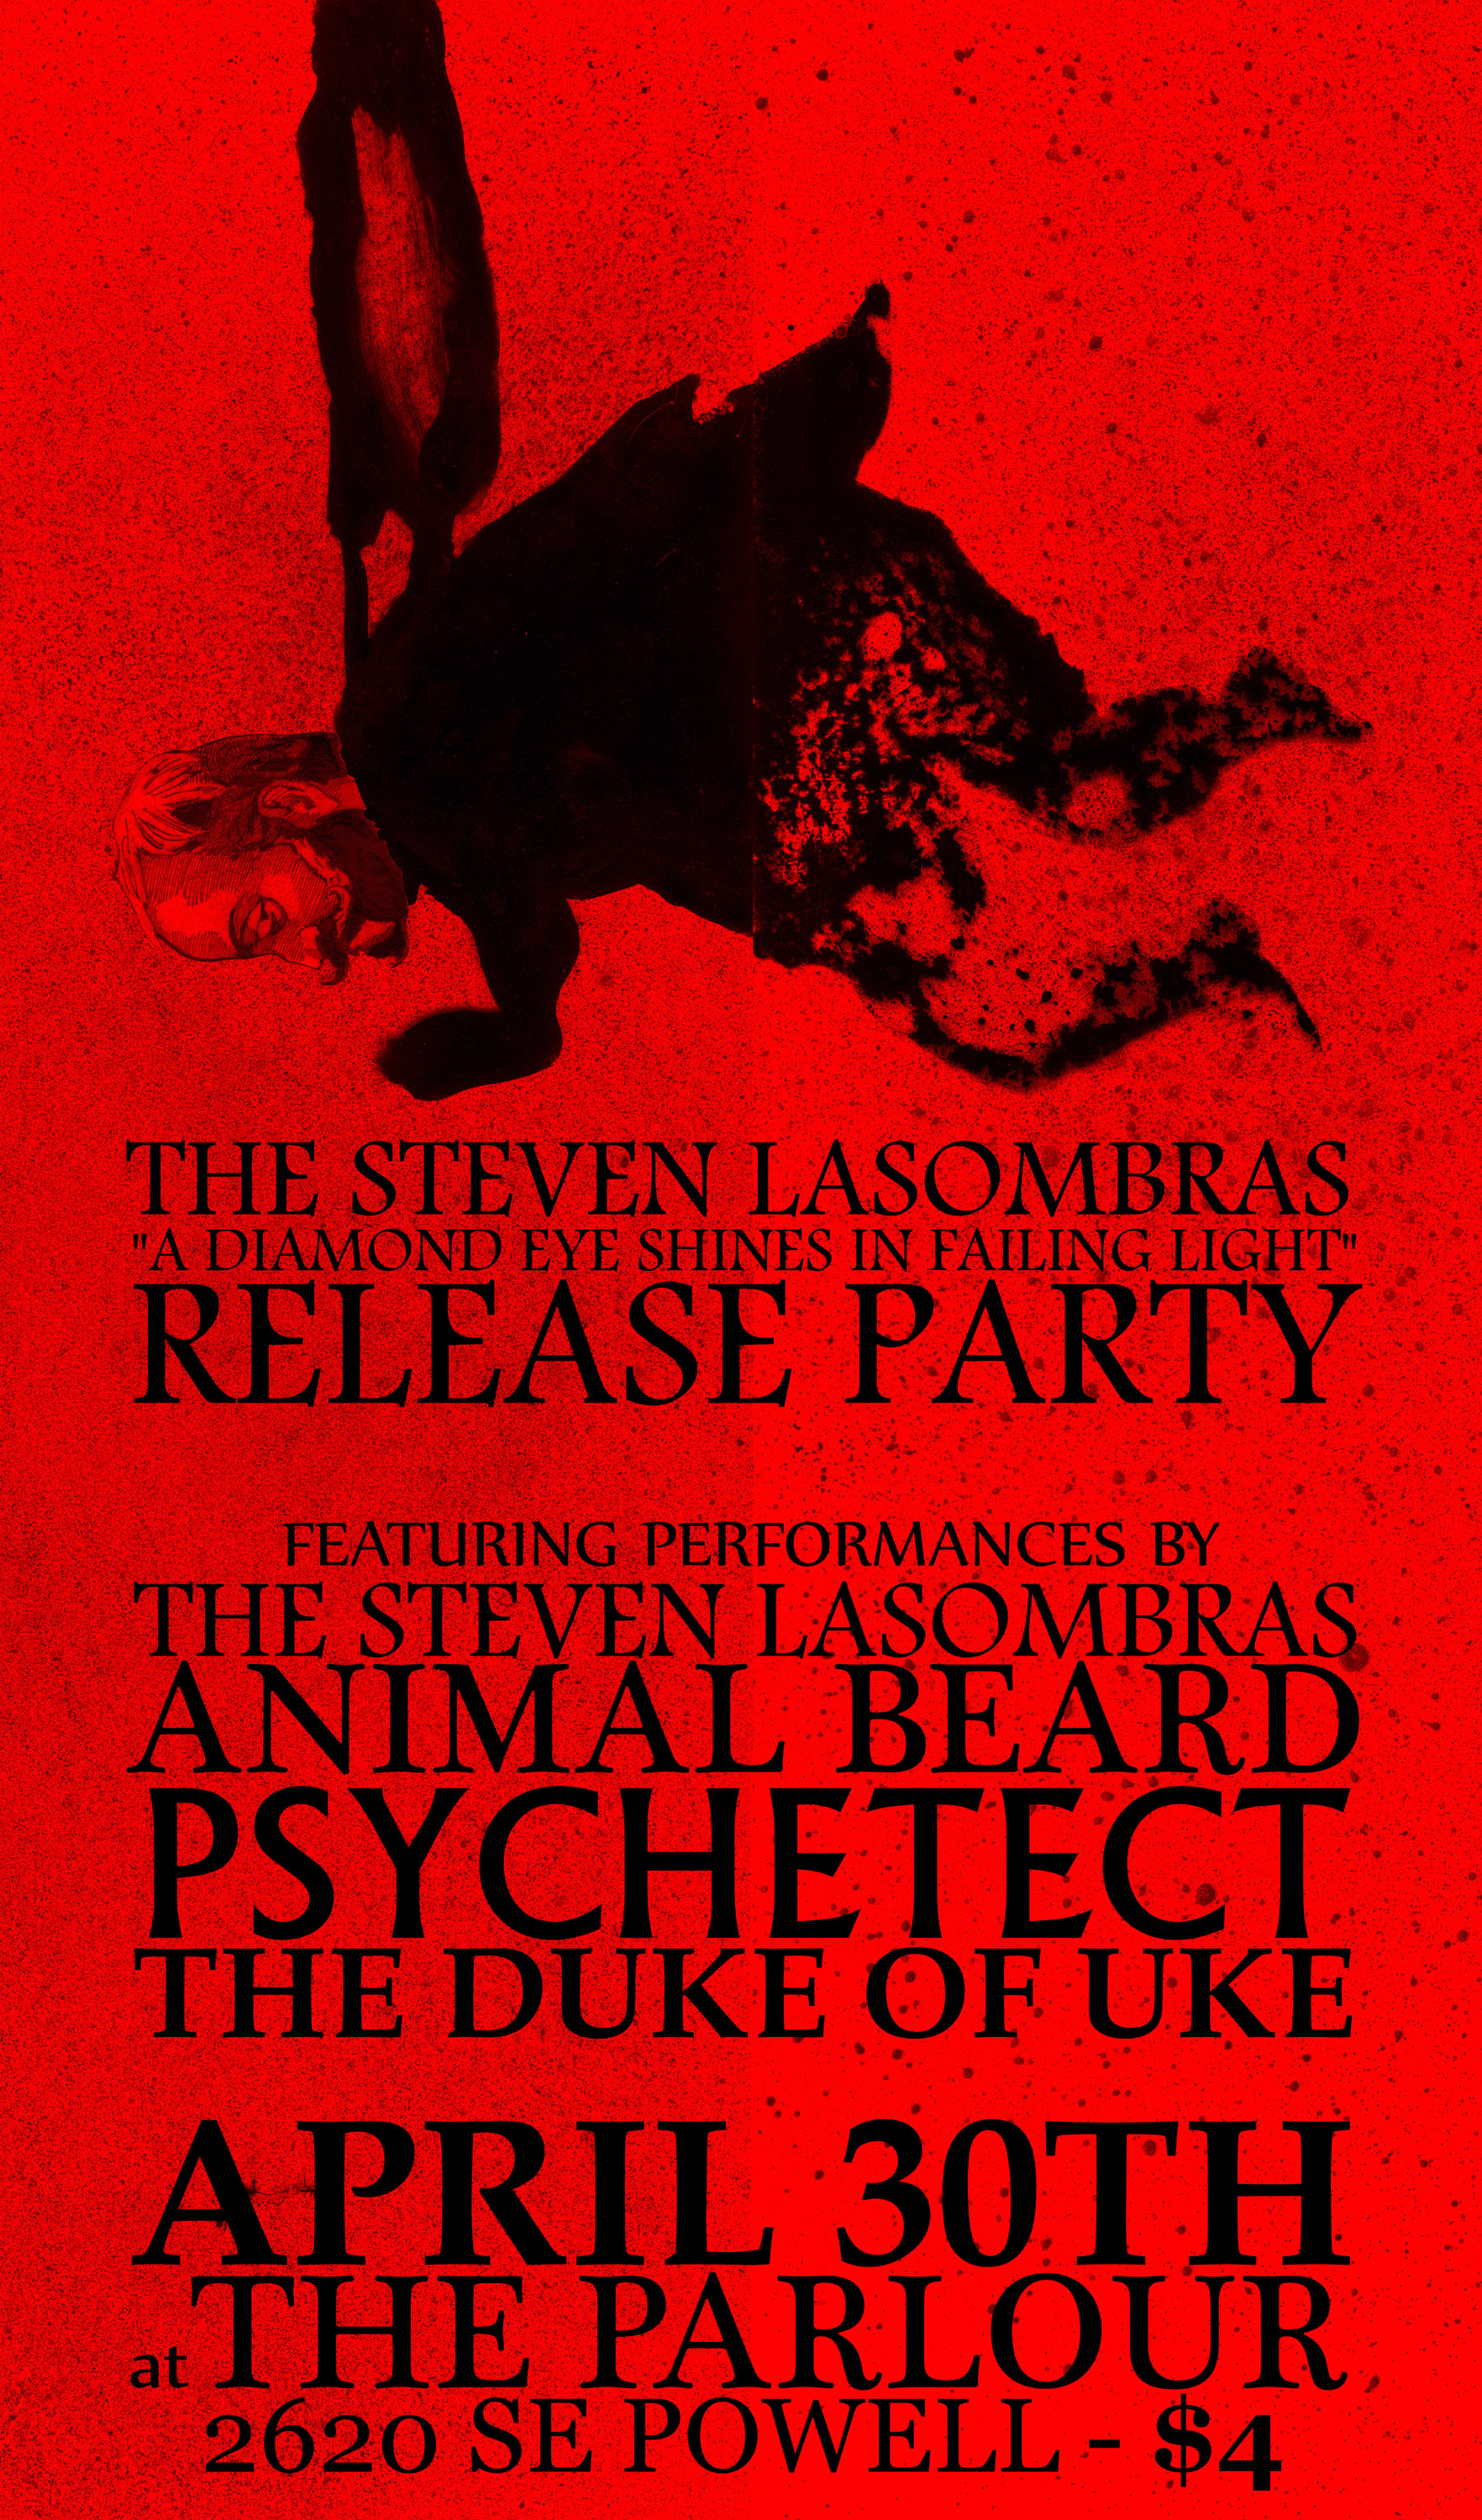 RELEASE PARTY FLYER 2 copy.jpg